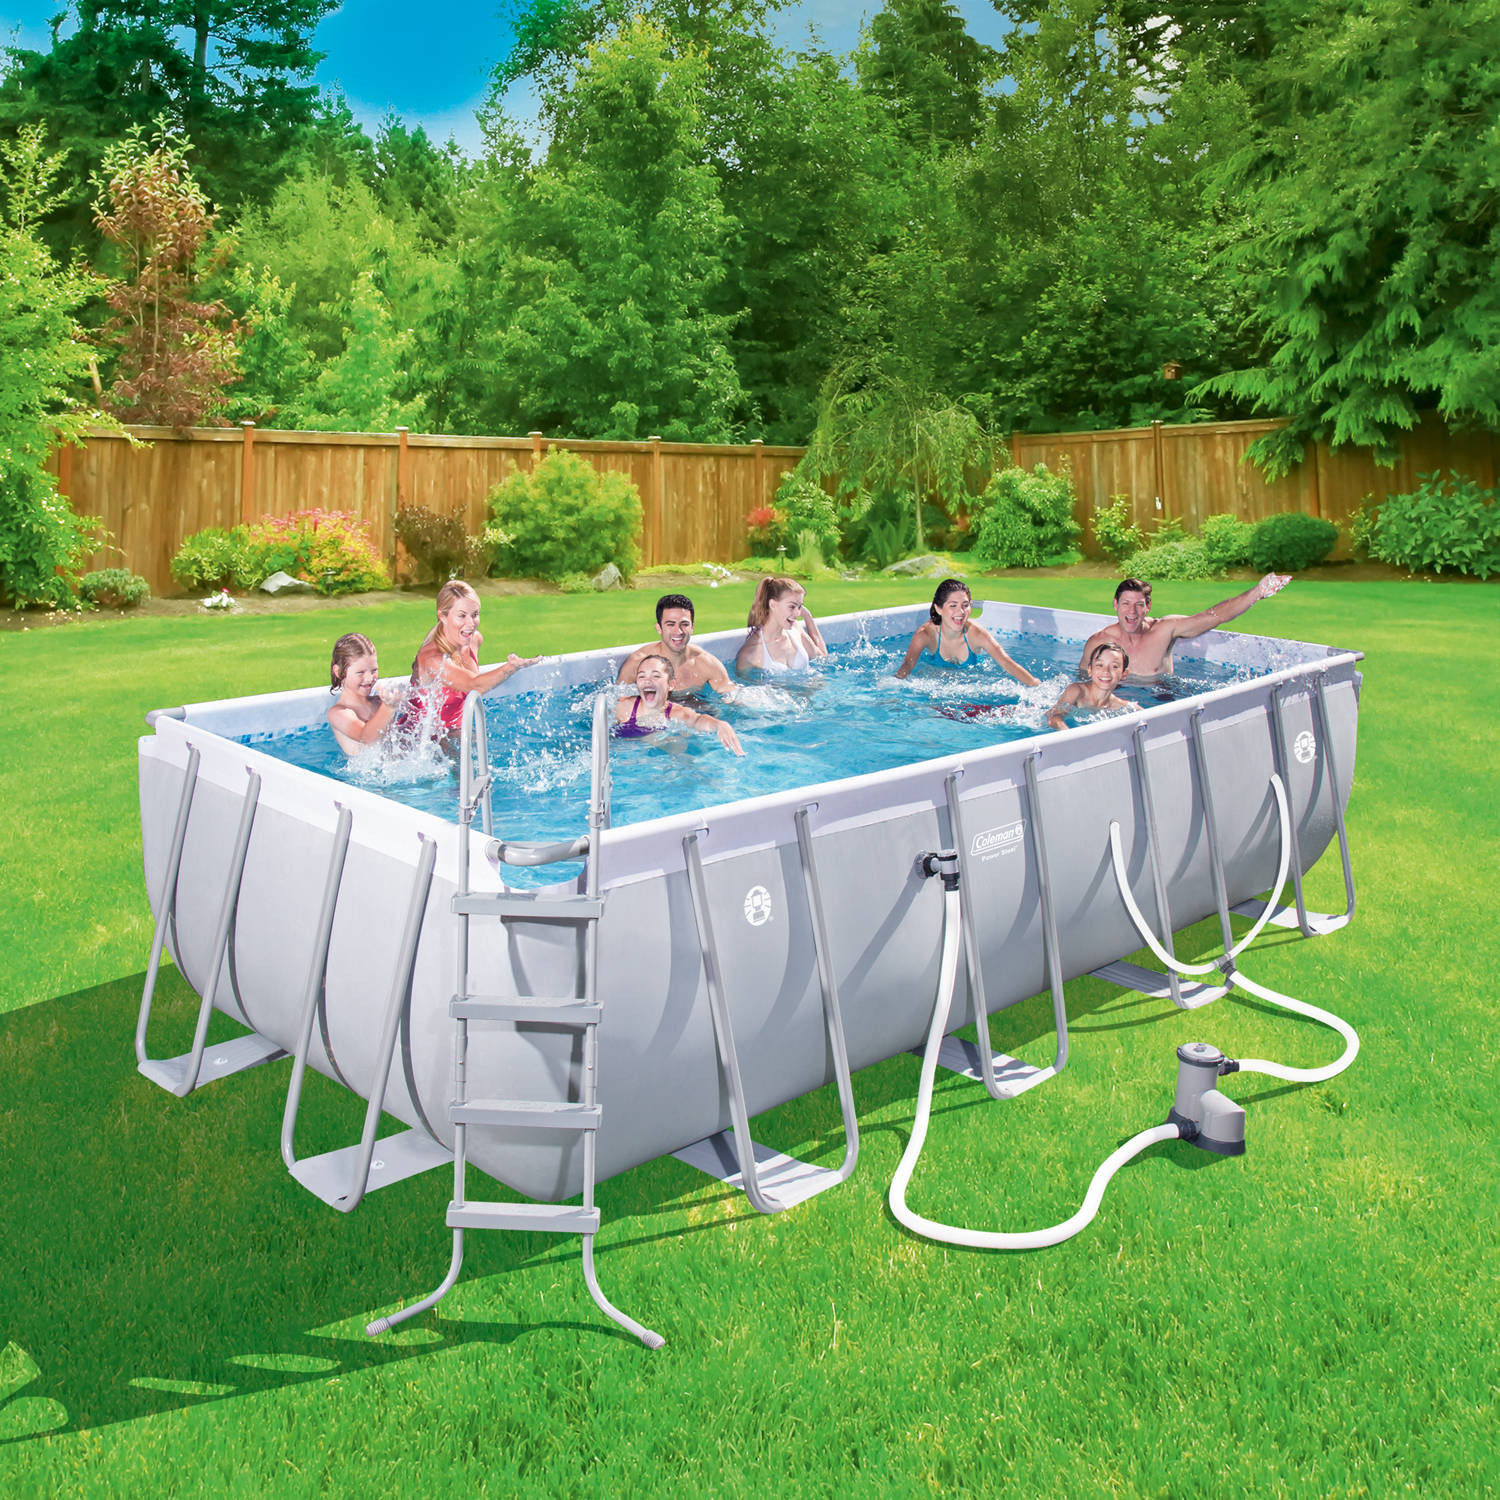 """Best ideas about Coleman Above Ground Pool . Save or Pin 18x9 Coleman Power Steel 48"""" Rectangular Frame Pool Set Now."""